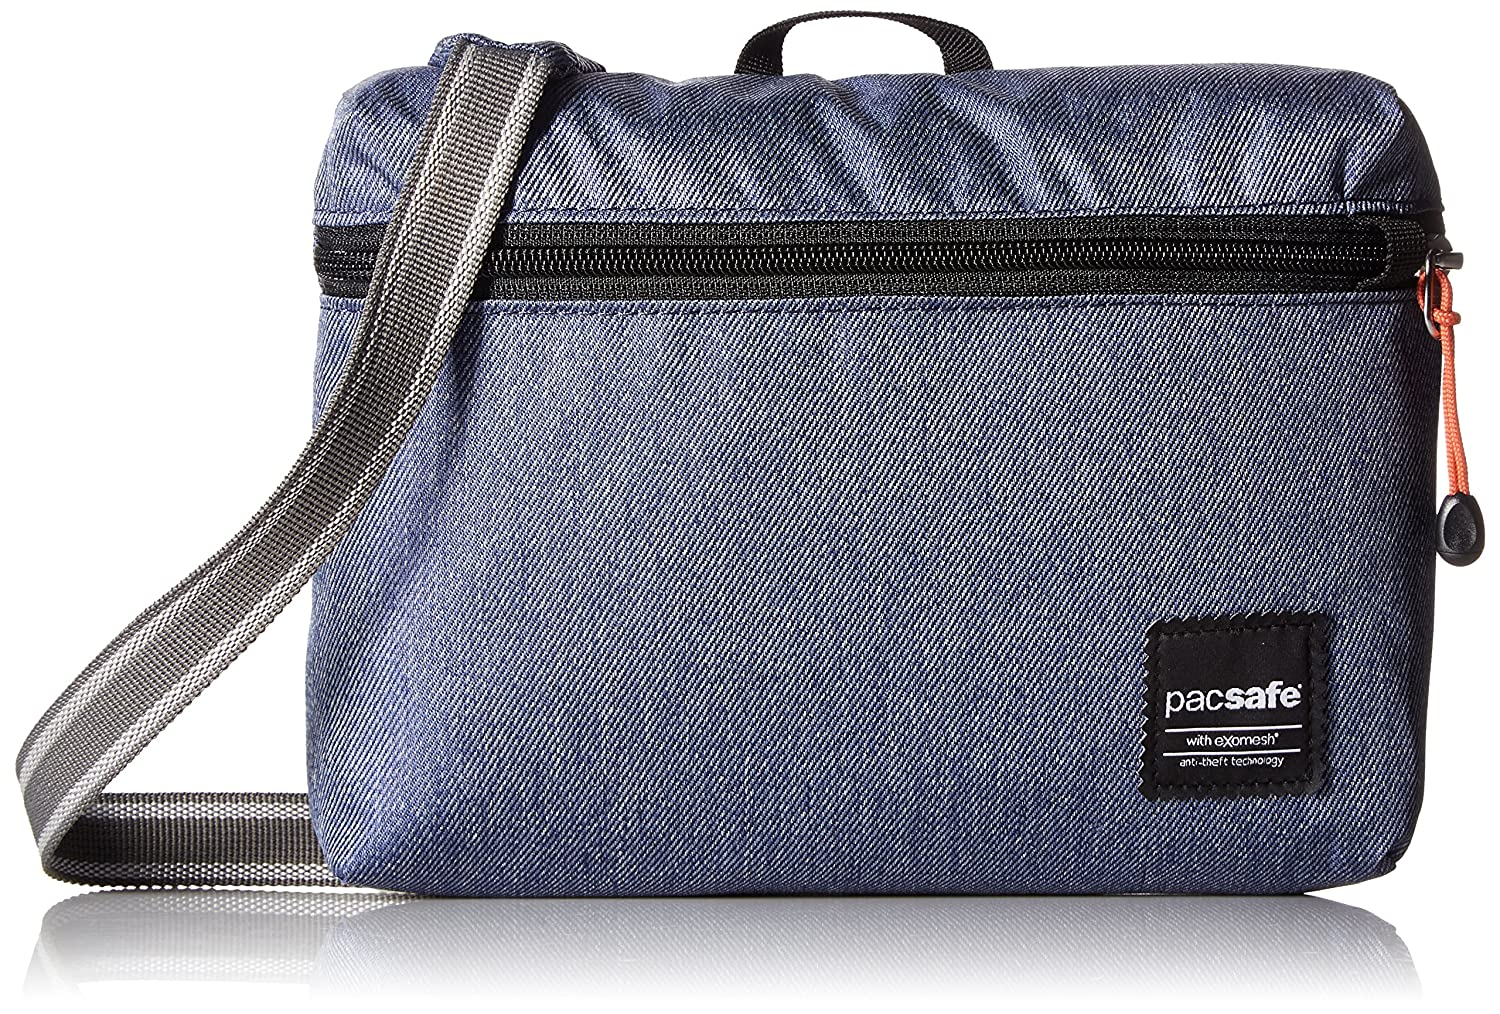 Pacsafe Slingsafe Lx50 Anti-Theft Mini Cross-Body Bag, Tweed Grey OUTS2 688334026080